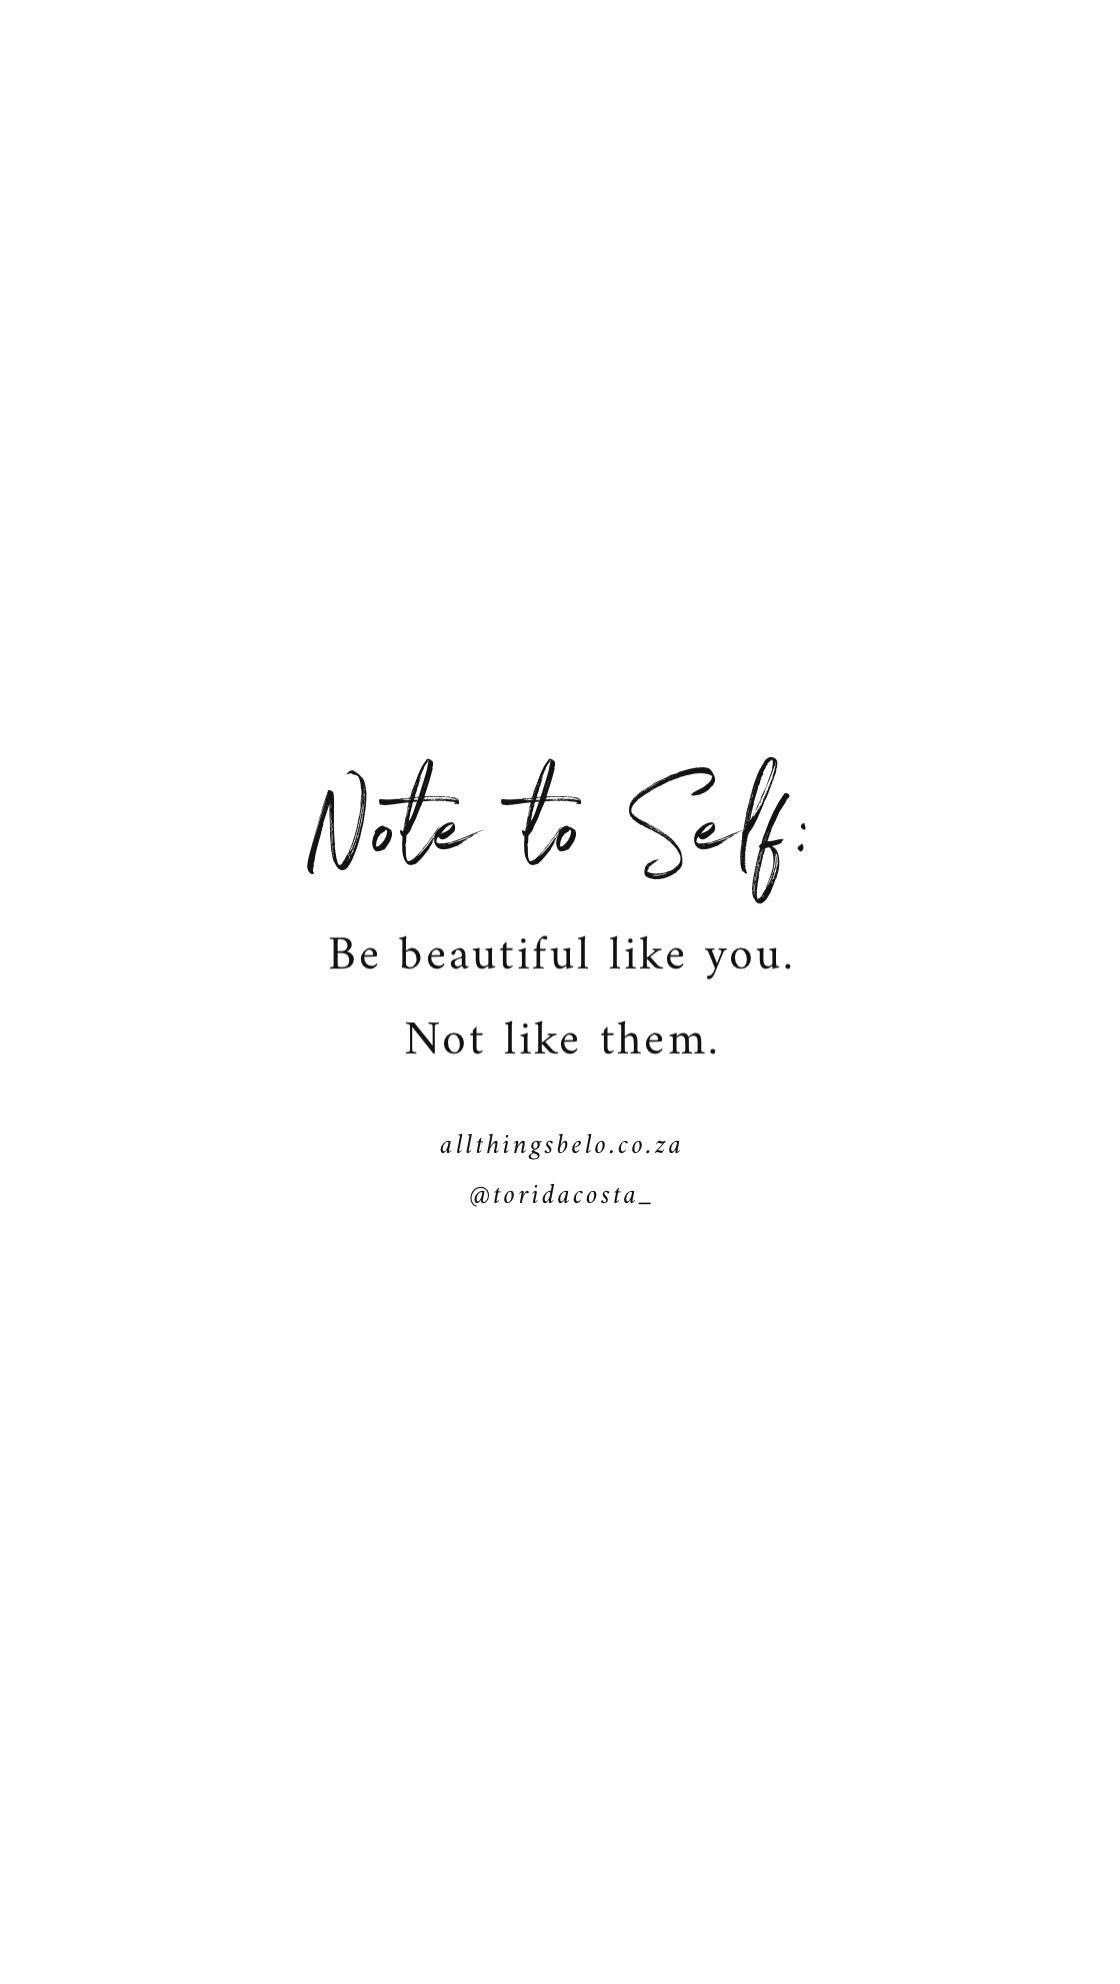 Don T Follow Society S Vision Of Beauty Or What Anyone Else S Vision Of Beauty Is Notetoself Love Yourself Note To Self Quotes Self Love Quotes Self Quotes